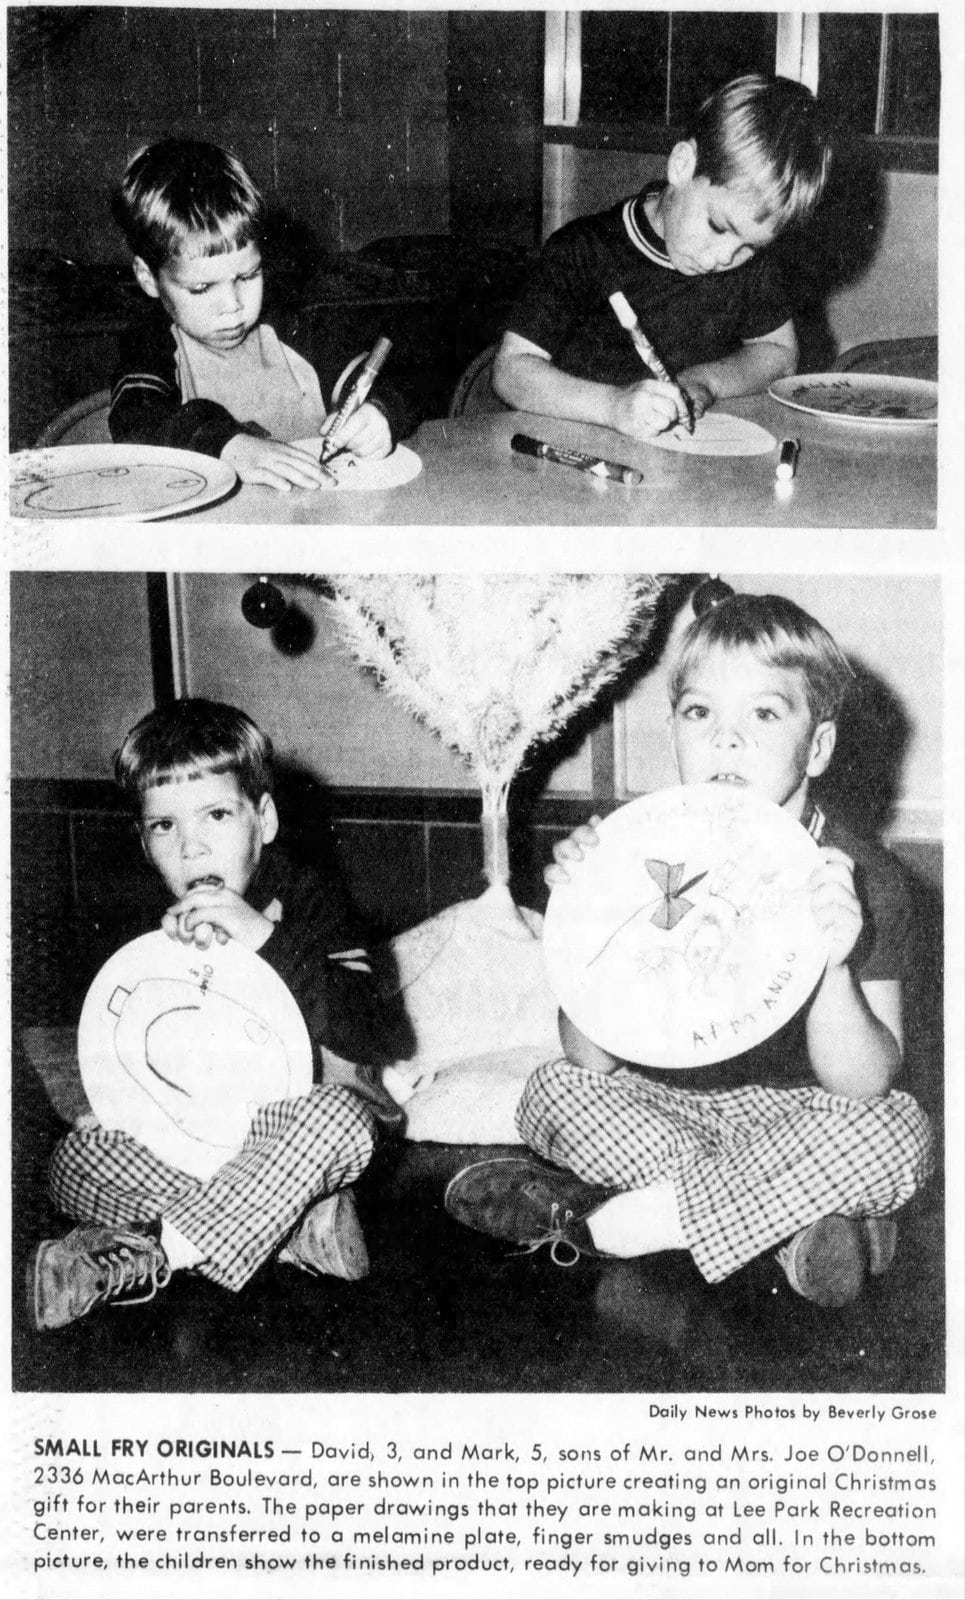 Kids making plate drawings - Irving Daily News (Texas) December 22, 1971